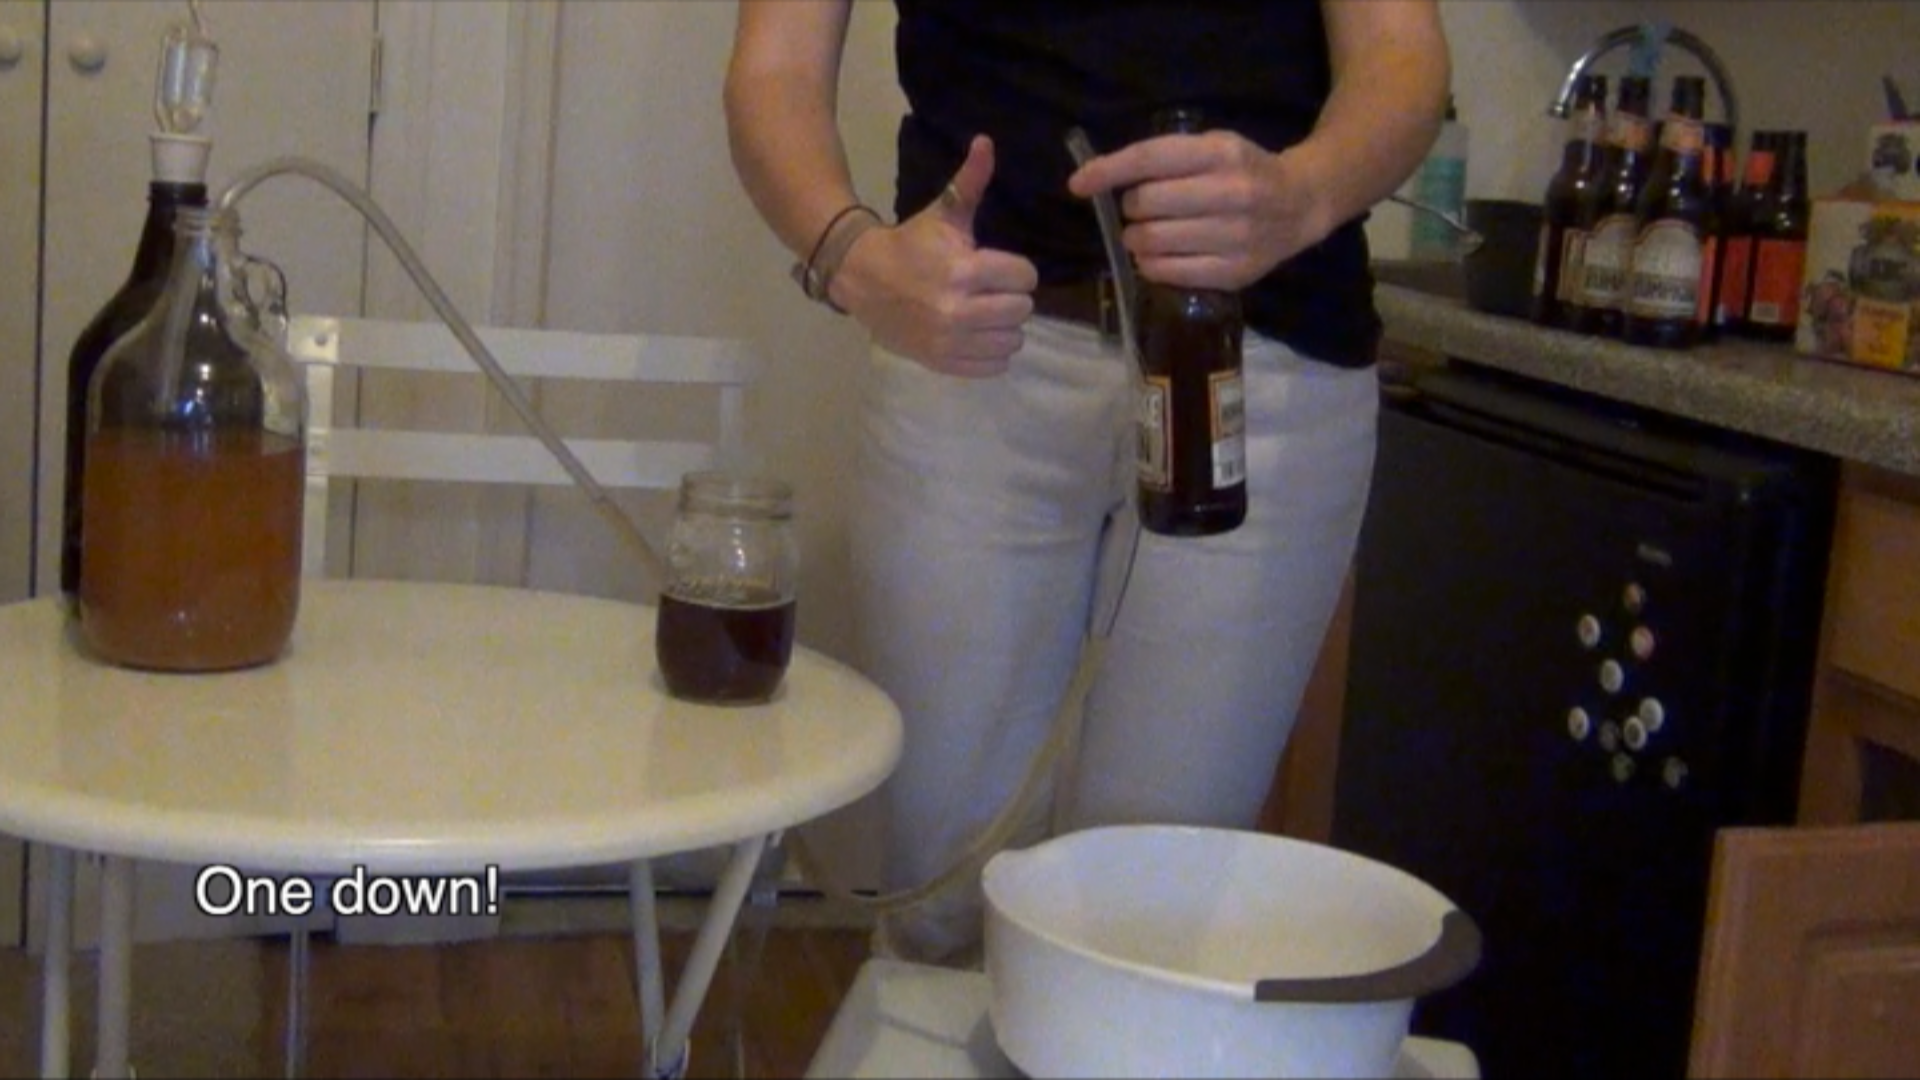 Inexplicably, I fill the first bottle without spilling a drop. This process and more are all in the video.